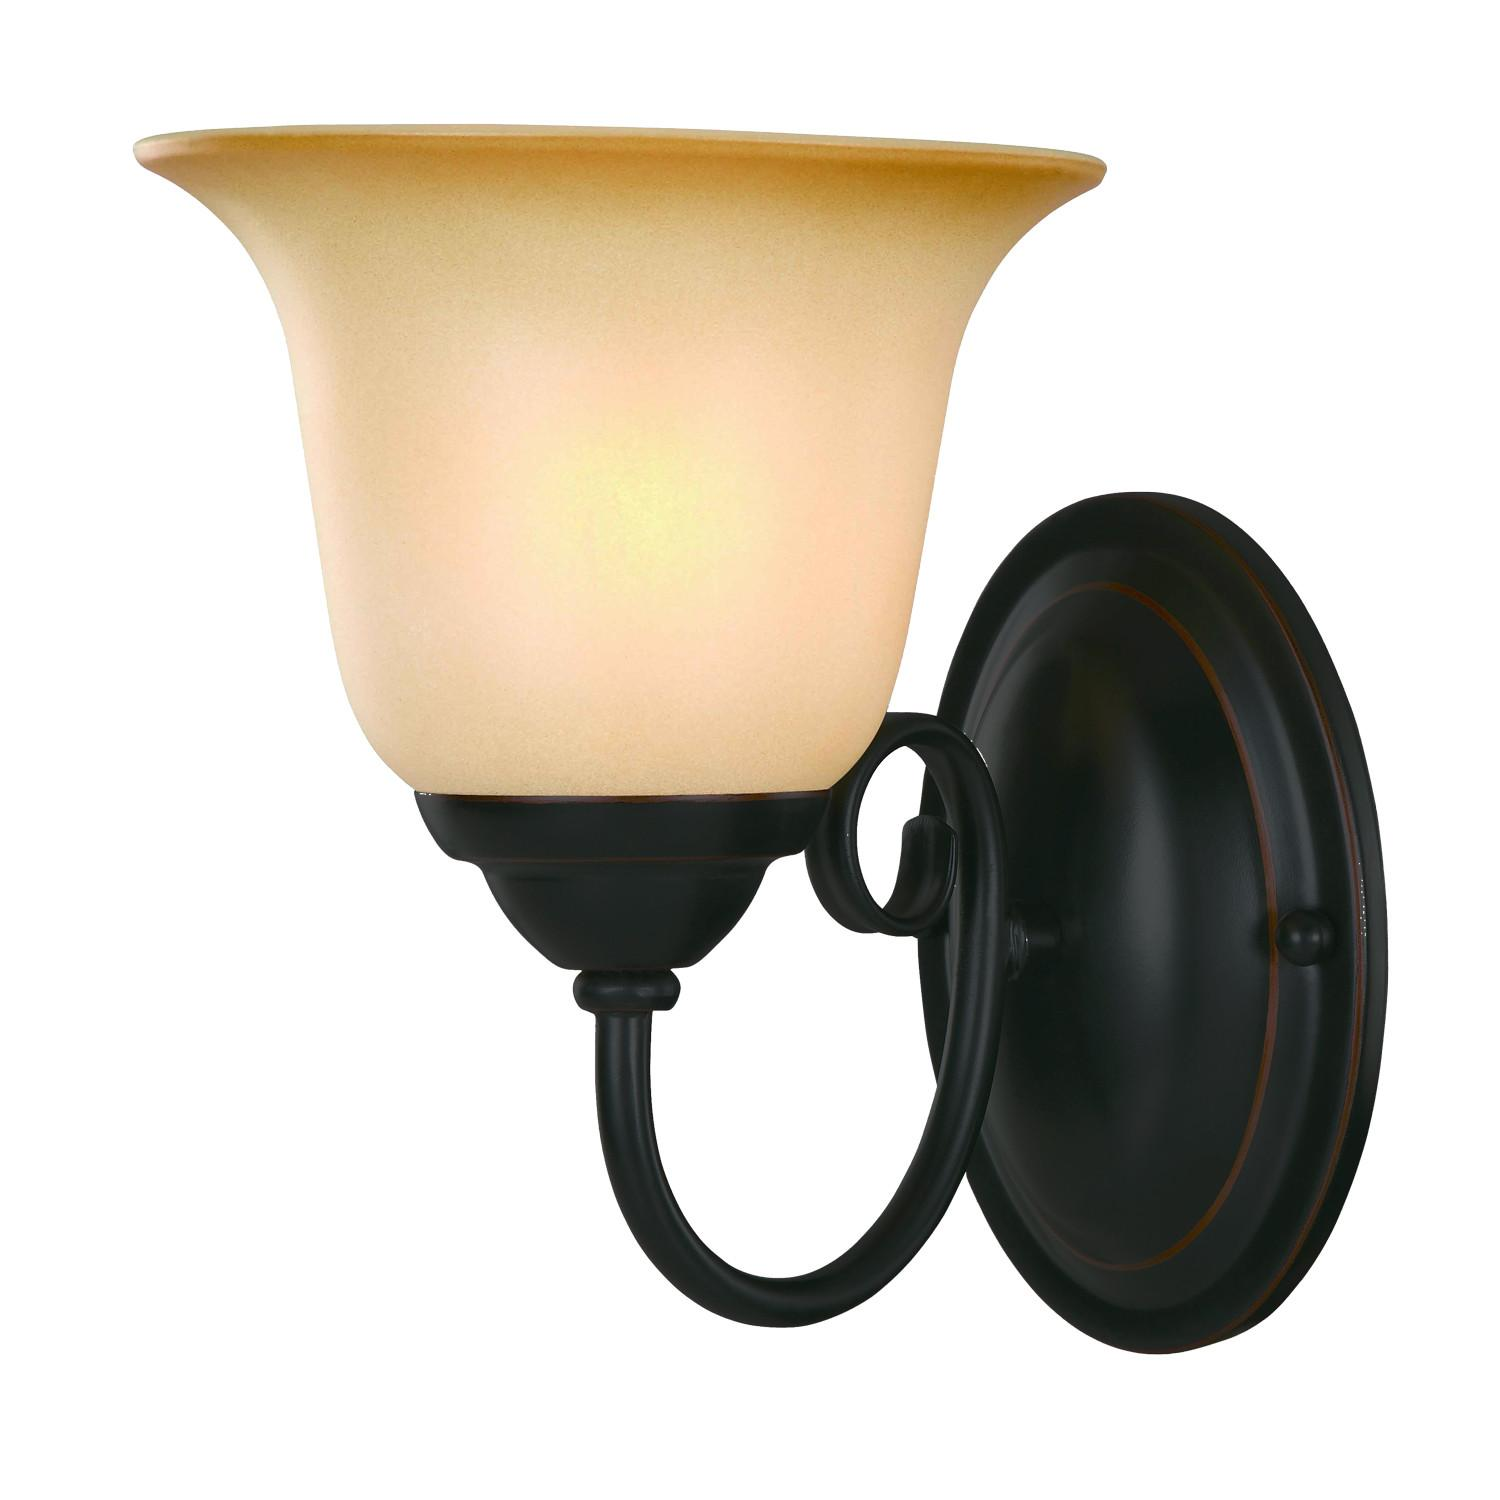 Oil Rubbed Black Bronze Bathroom Light Wall Mounted Sconce